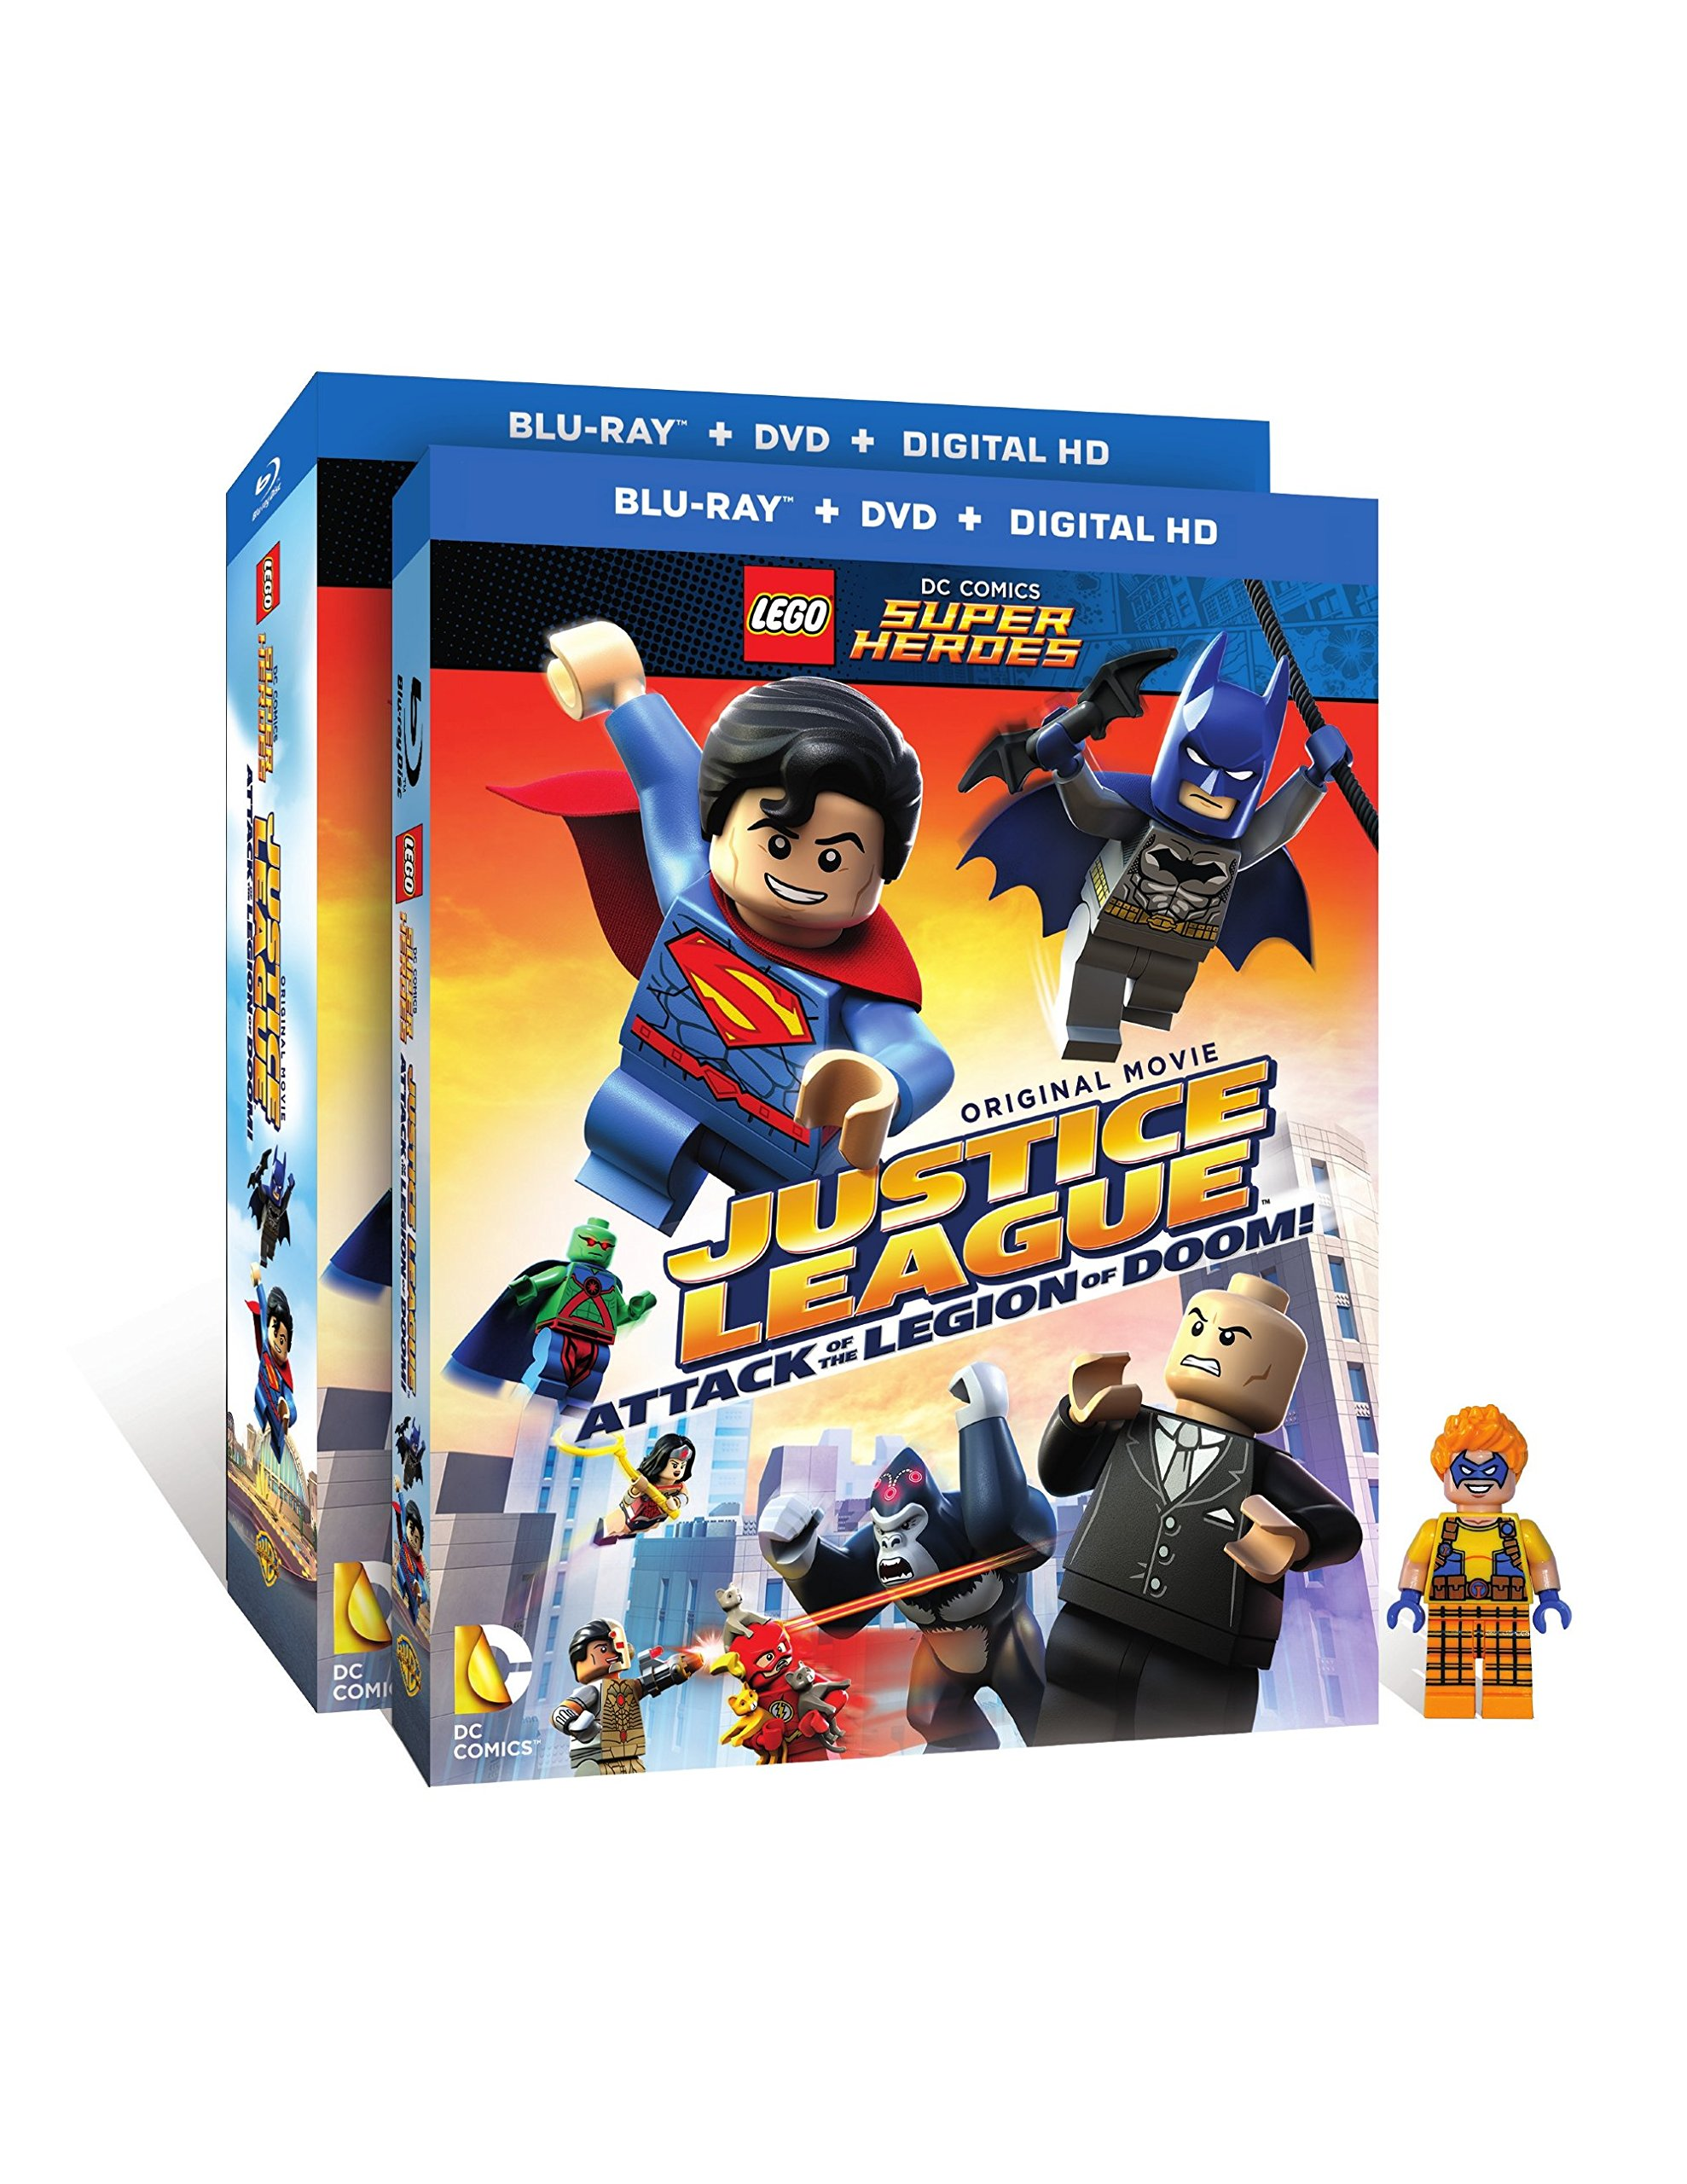 Blu-ray : Lego DC Super Heroes: Justice League - Attack of the Legion of Doom! (With DVD, Full Frame, Ultraviolet Digital Copy, 2 Pack, Digitally Mastered in HD)